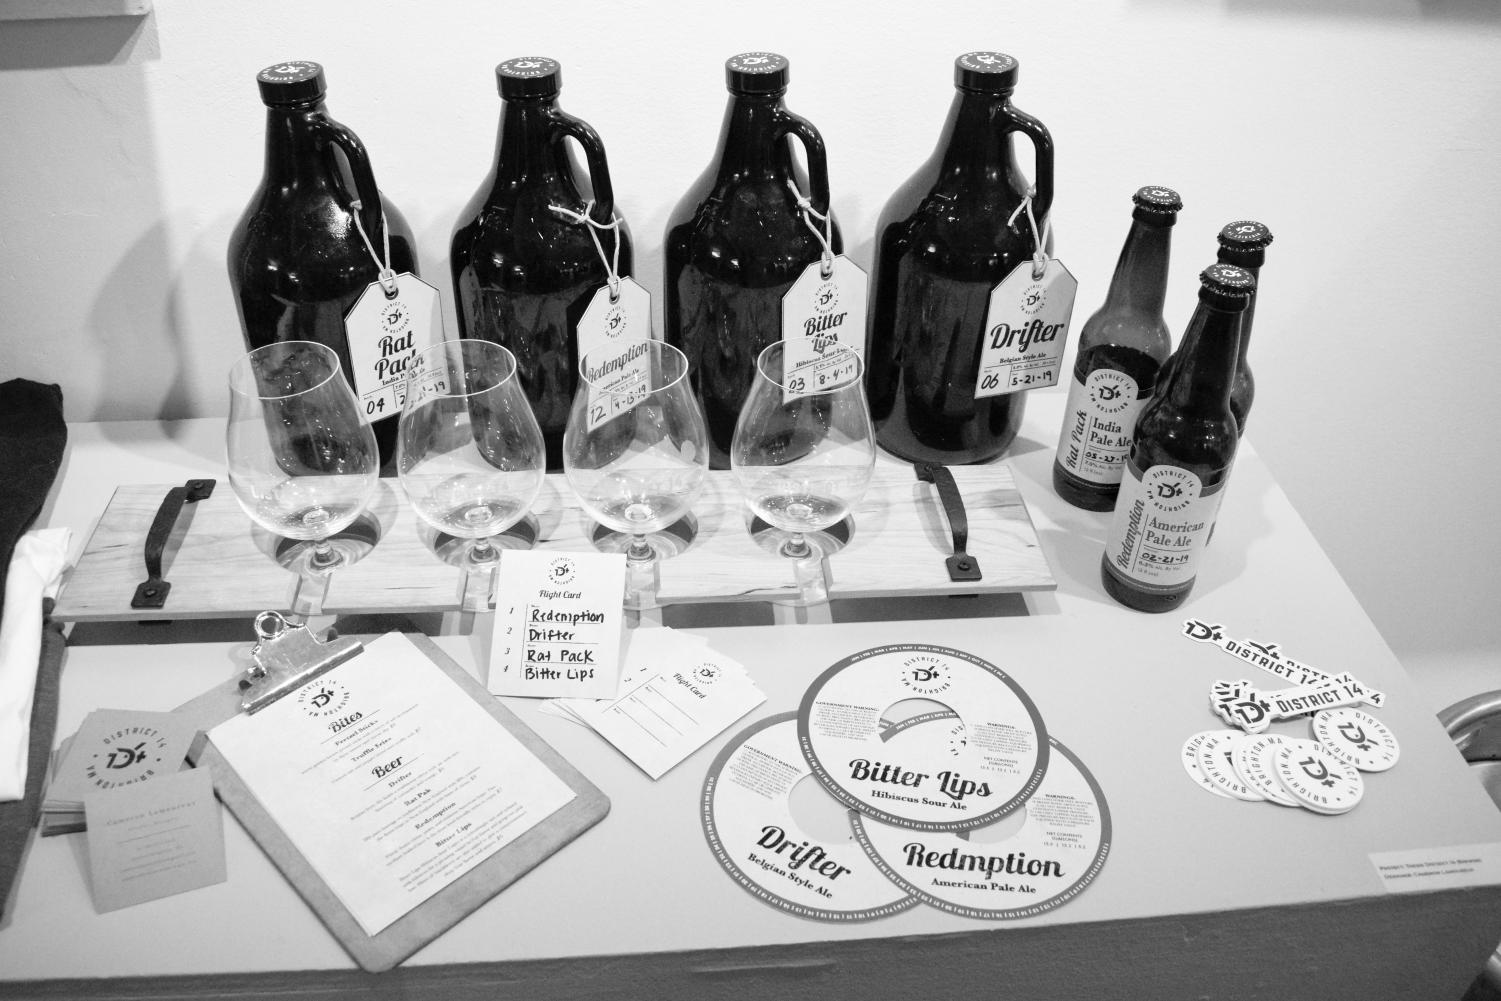 Cameron Lamoureux designed merchandise for a fictional brewery in Allston-Brighton for his capstone